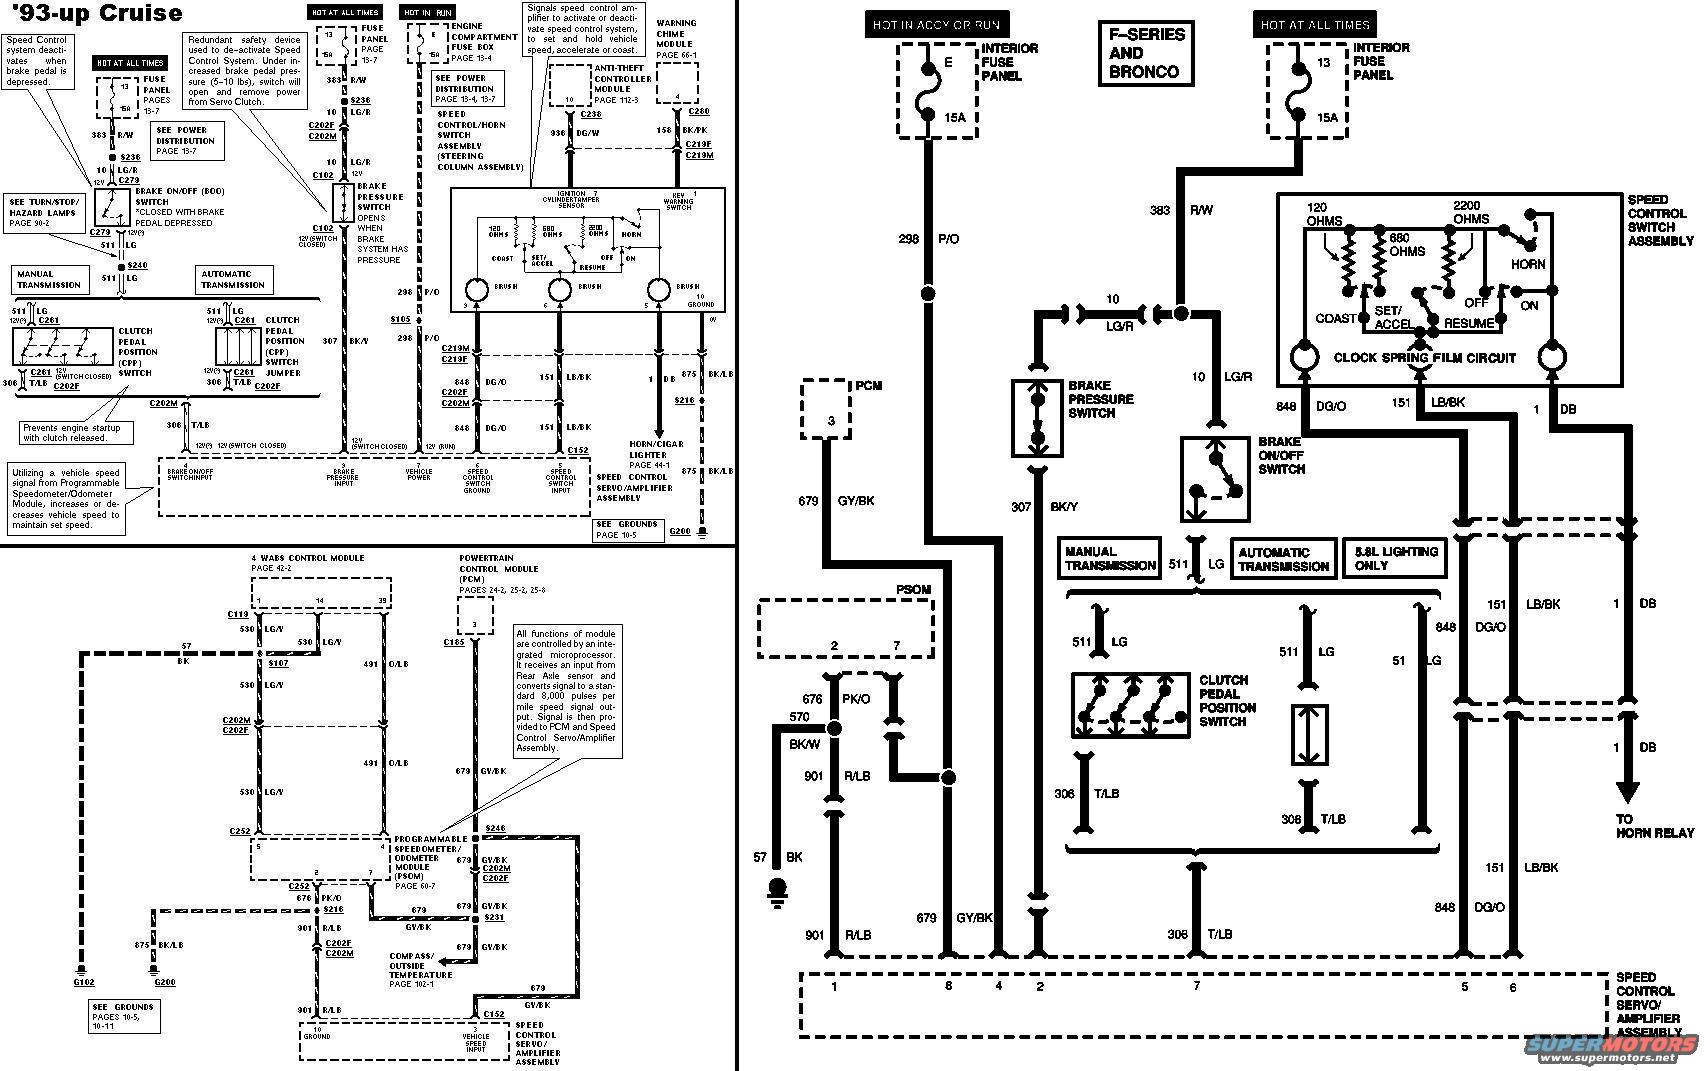 1994 ford ranger wiring diagram cruise will a 1999 f-250 cruise control fit my 1994 bronco ... #6